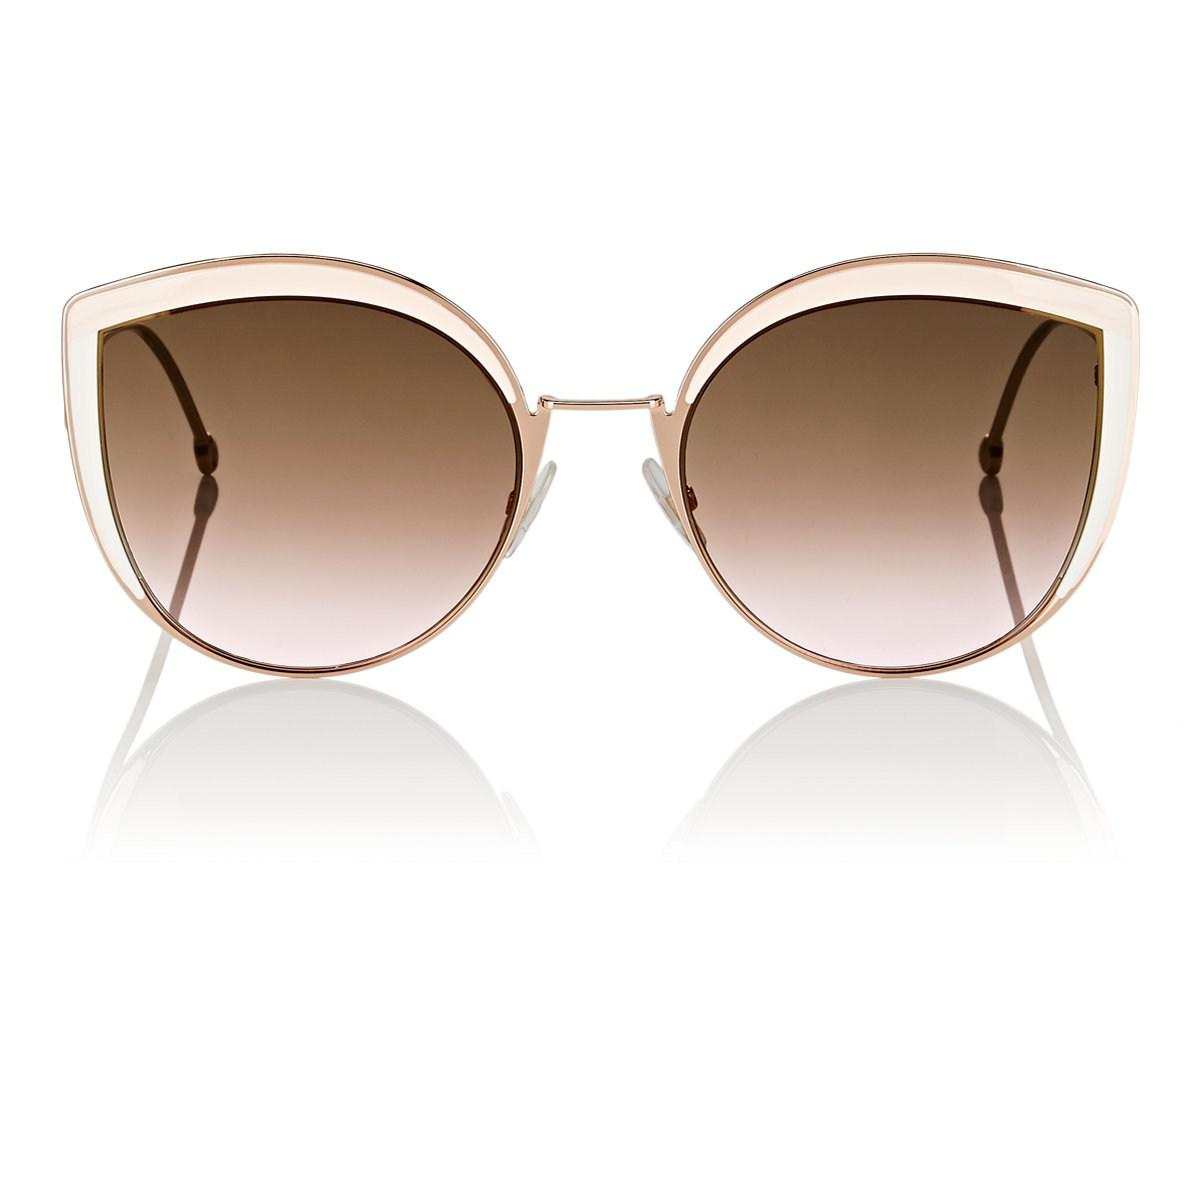 12f6ab2d9a80 Gallery. Previously sold at  Barneys New York · Women s Illevesta Milan  Women s Flower Sunglasses ...